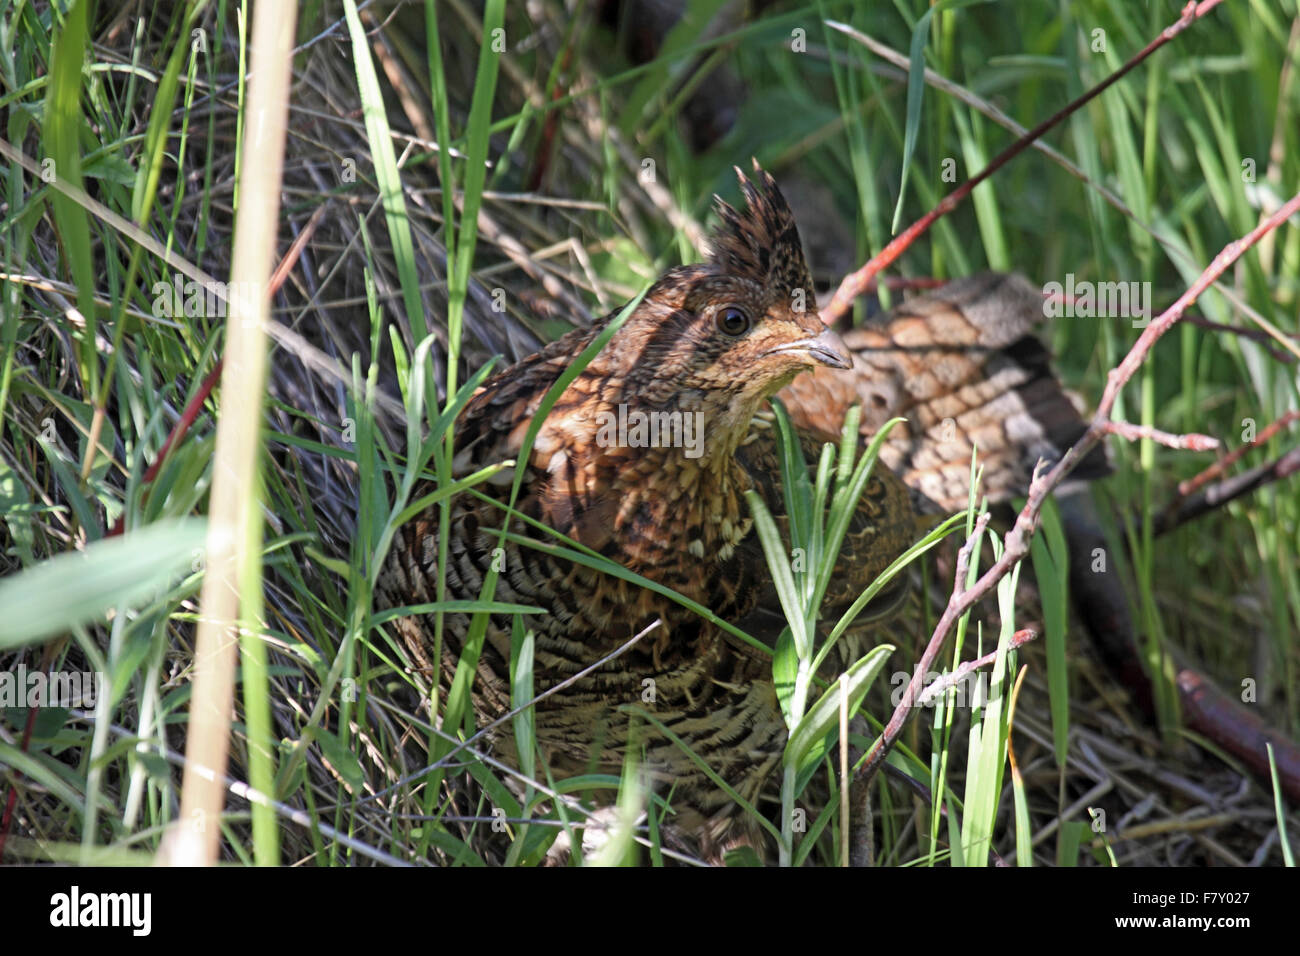 Ruffed grouse red morph female in concealment in Western Canada - Stock Image